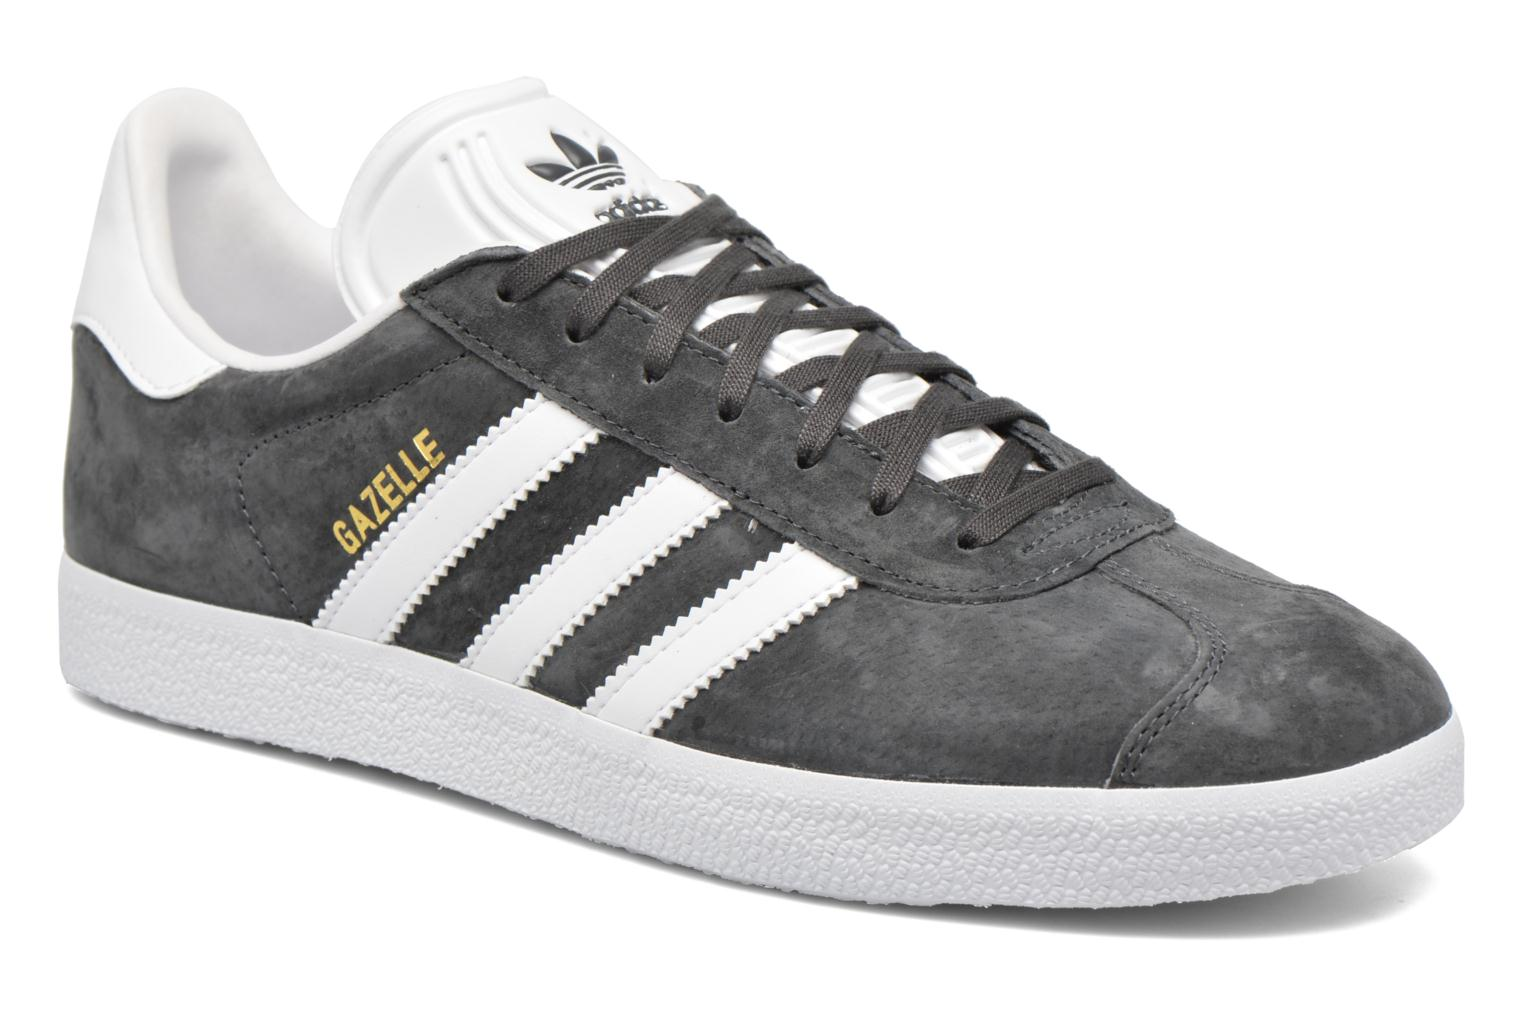 Adidas Originals Gazelle (Gris) - Baskets en Más cómodo Mode pas cher et belle